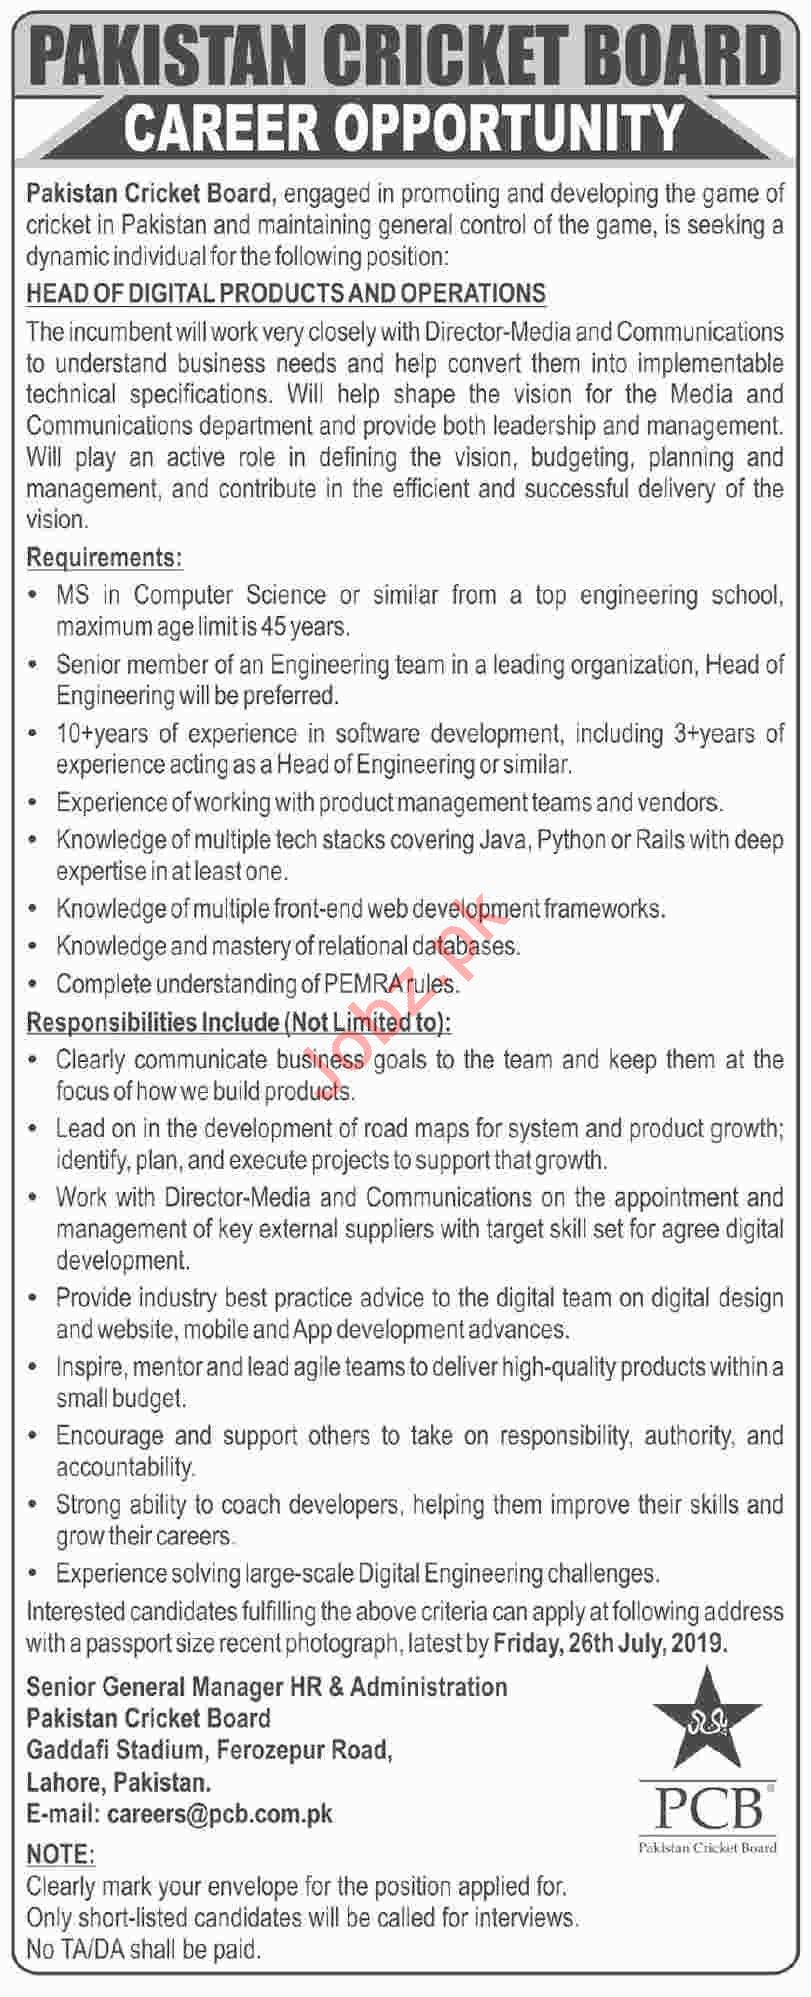 PCB Lahore Jobs for Head of Digital Product & Operations